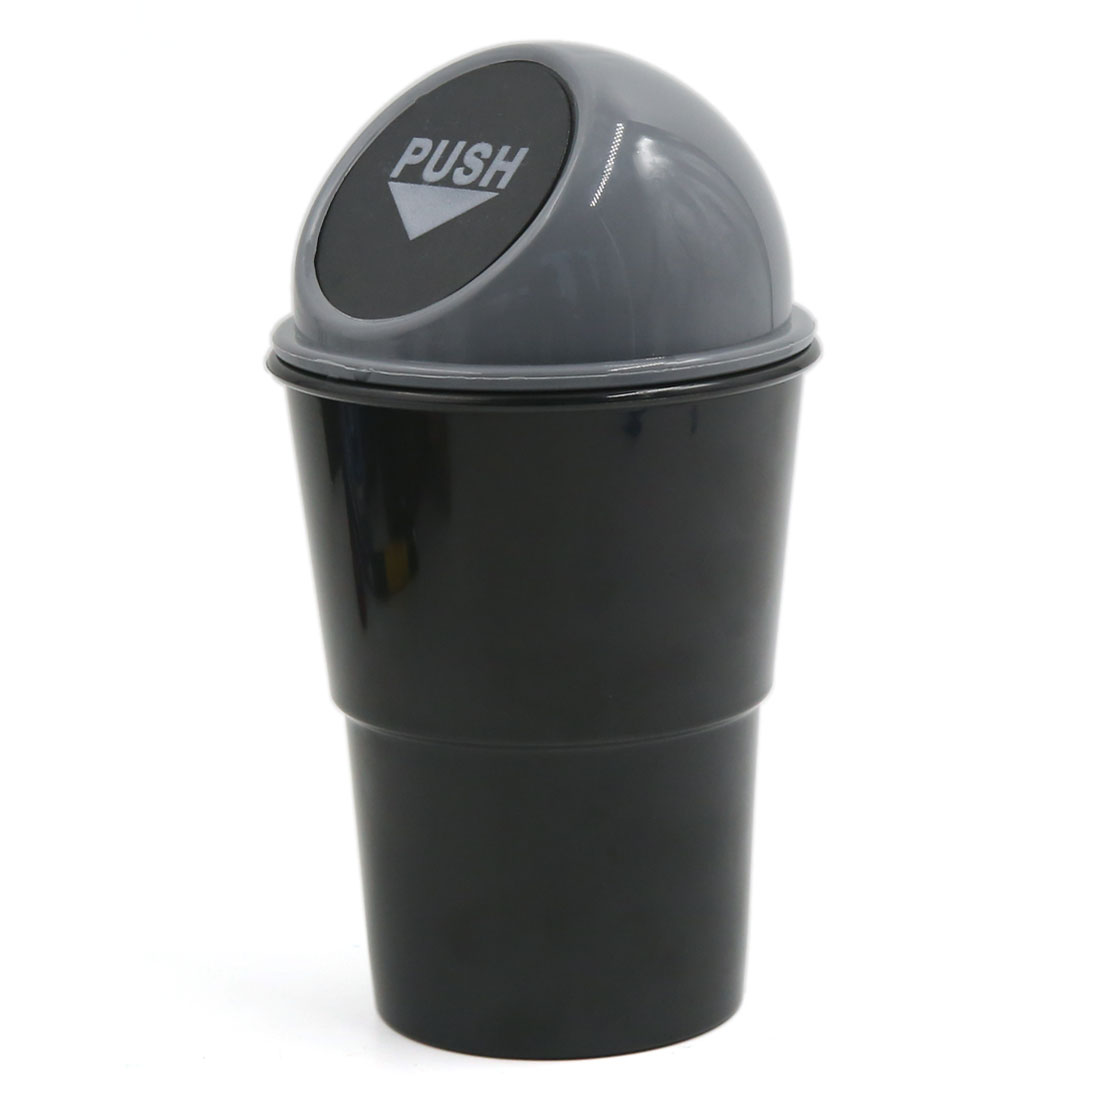 Auto Car Trash Rubbish Bin Can Office Home Garbage Dust Case Holder Black Gray